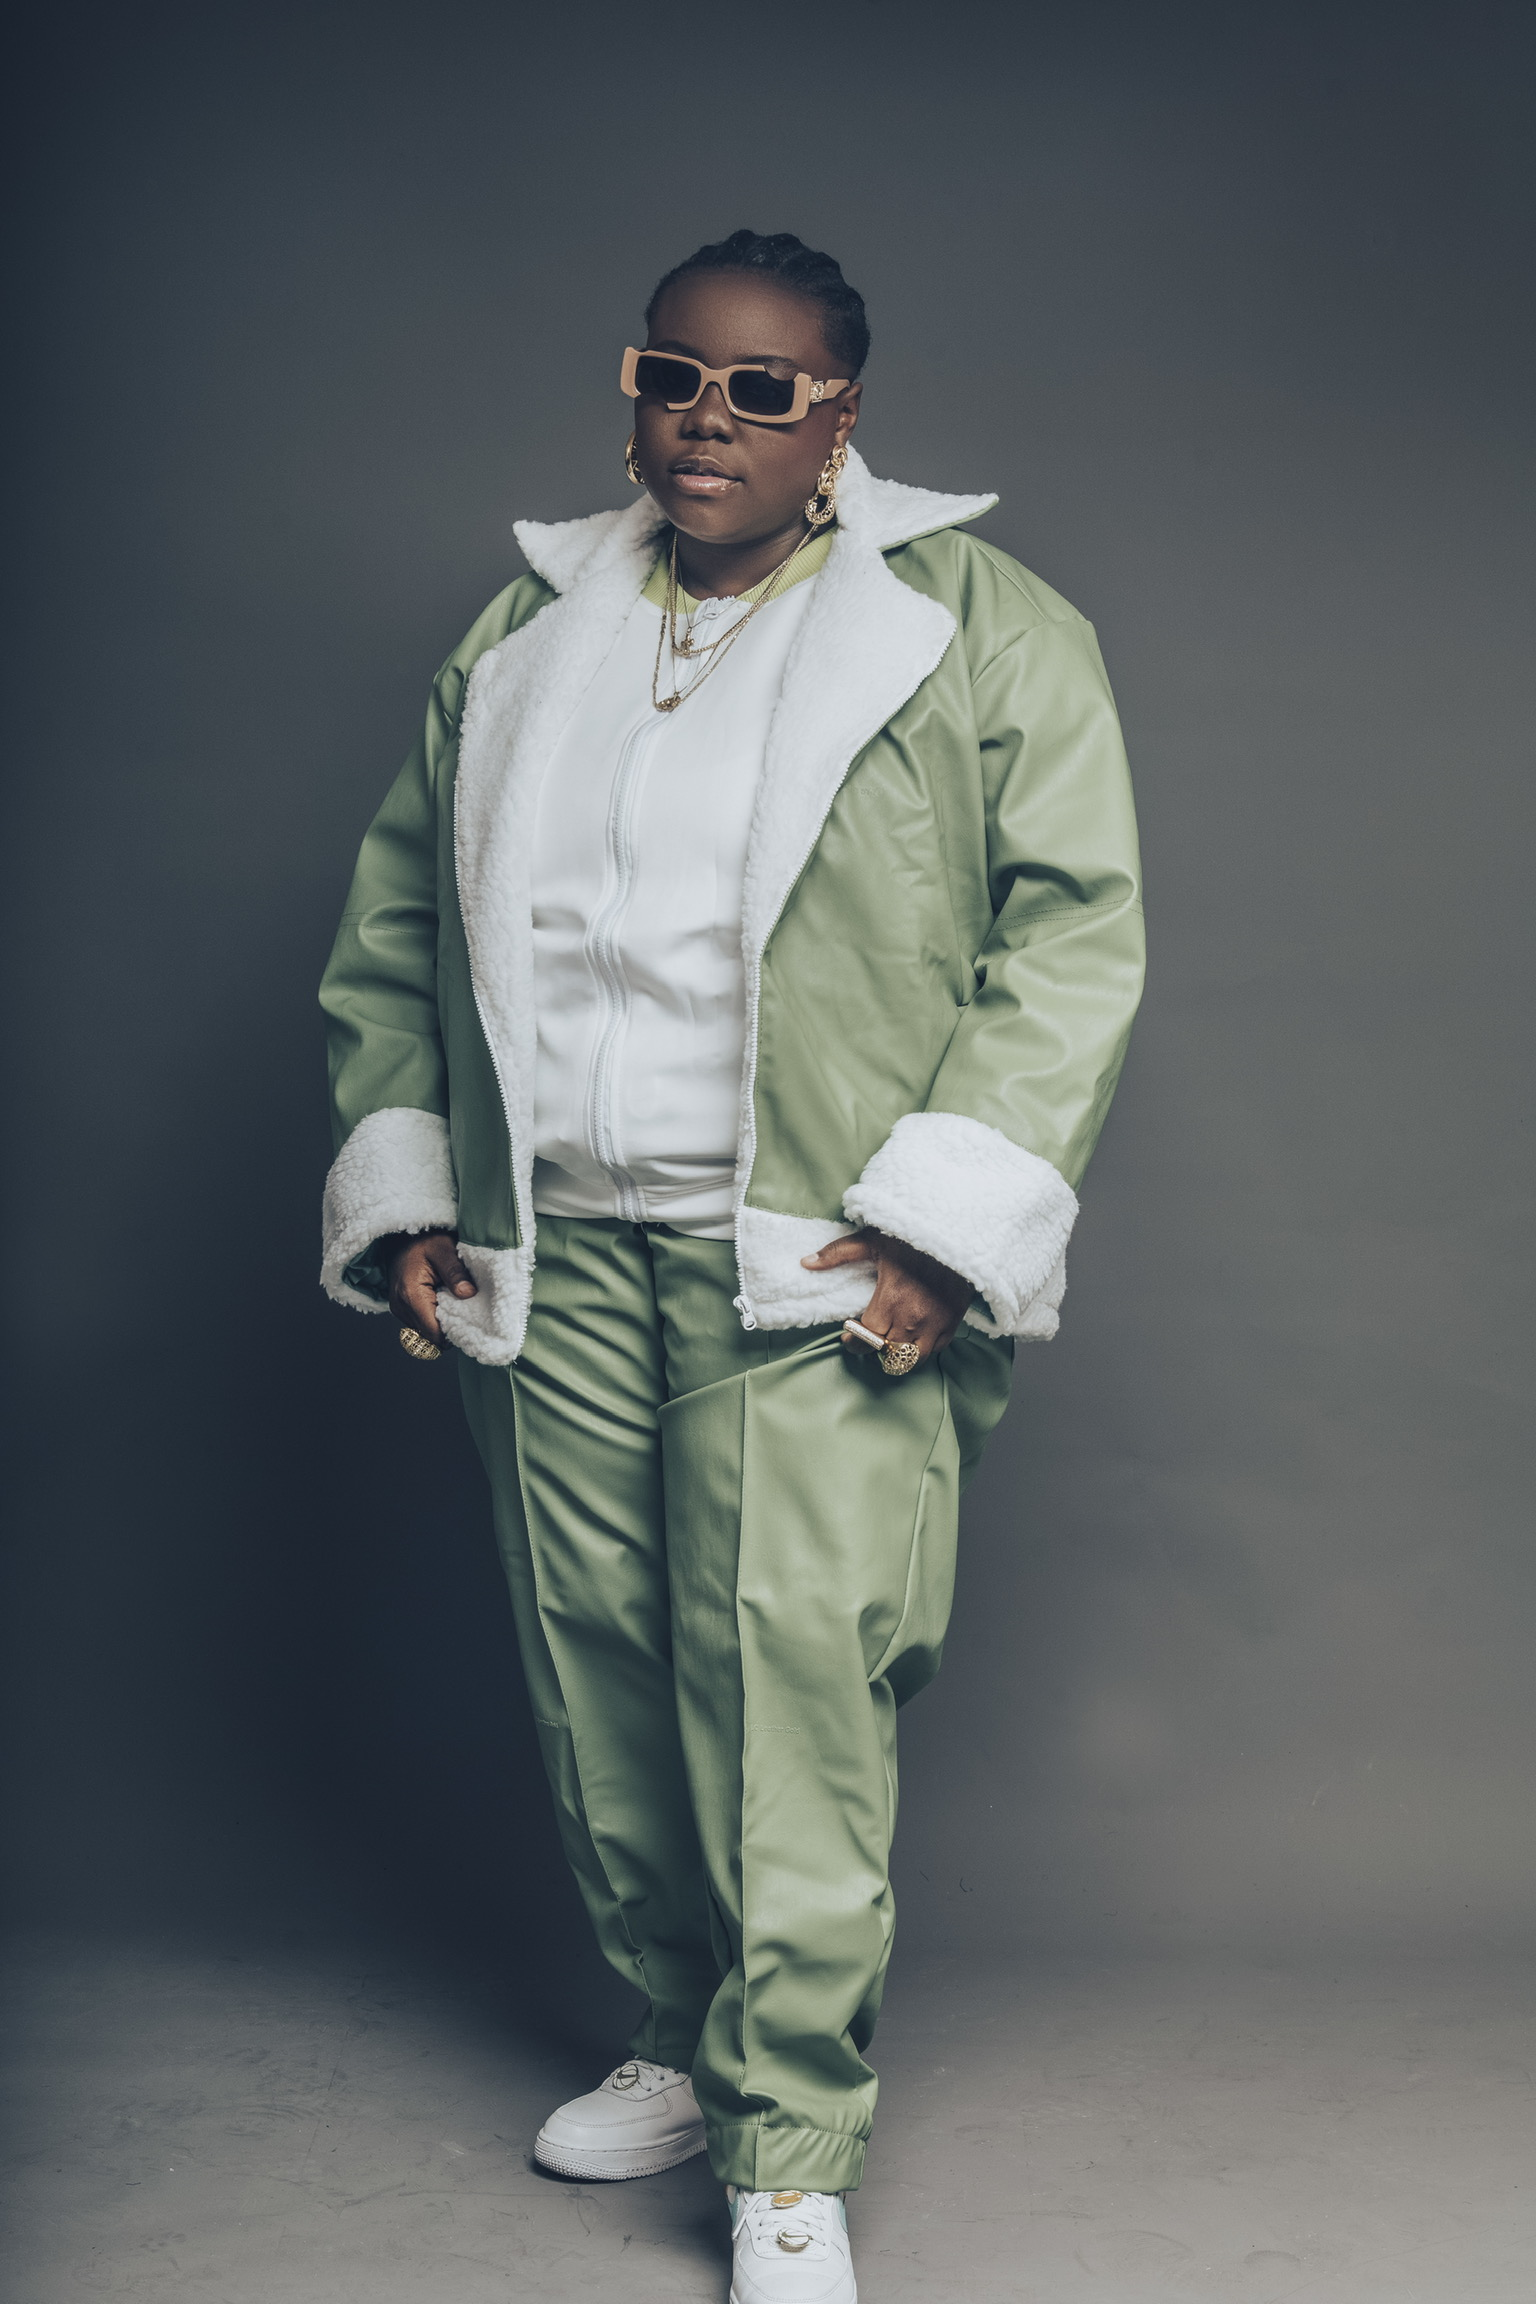 teni-the-entertainer-wonderland-album-pictures-style-rave